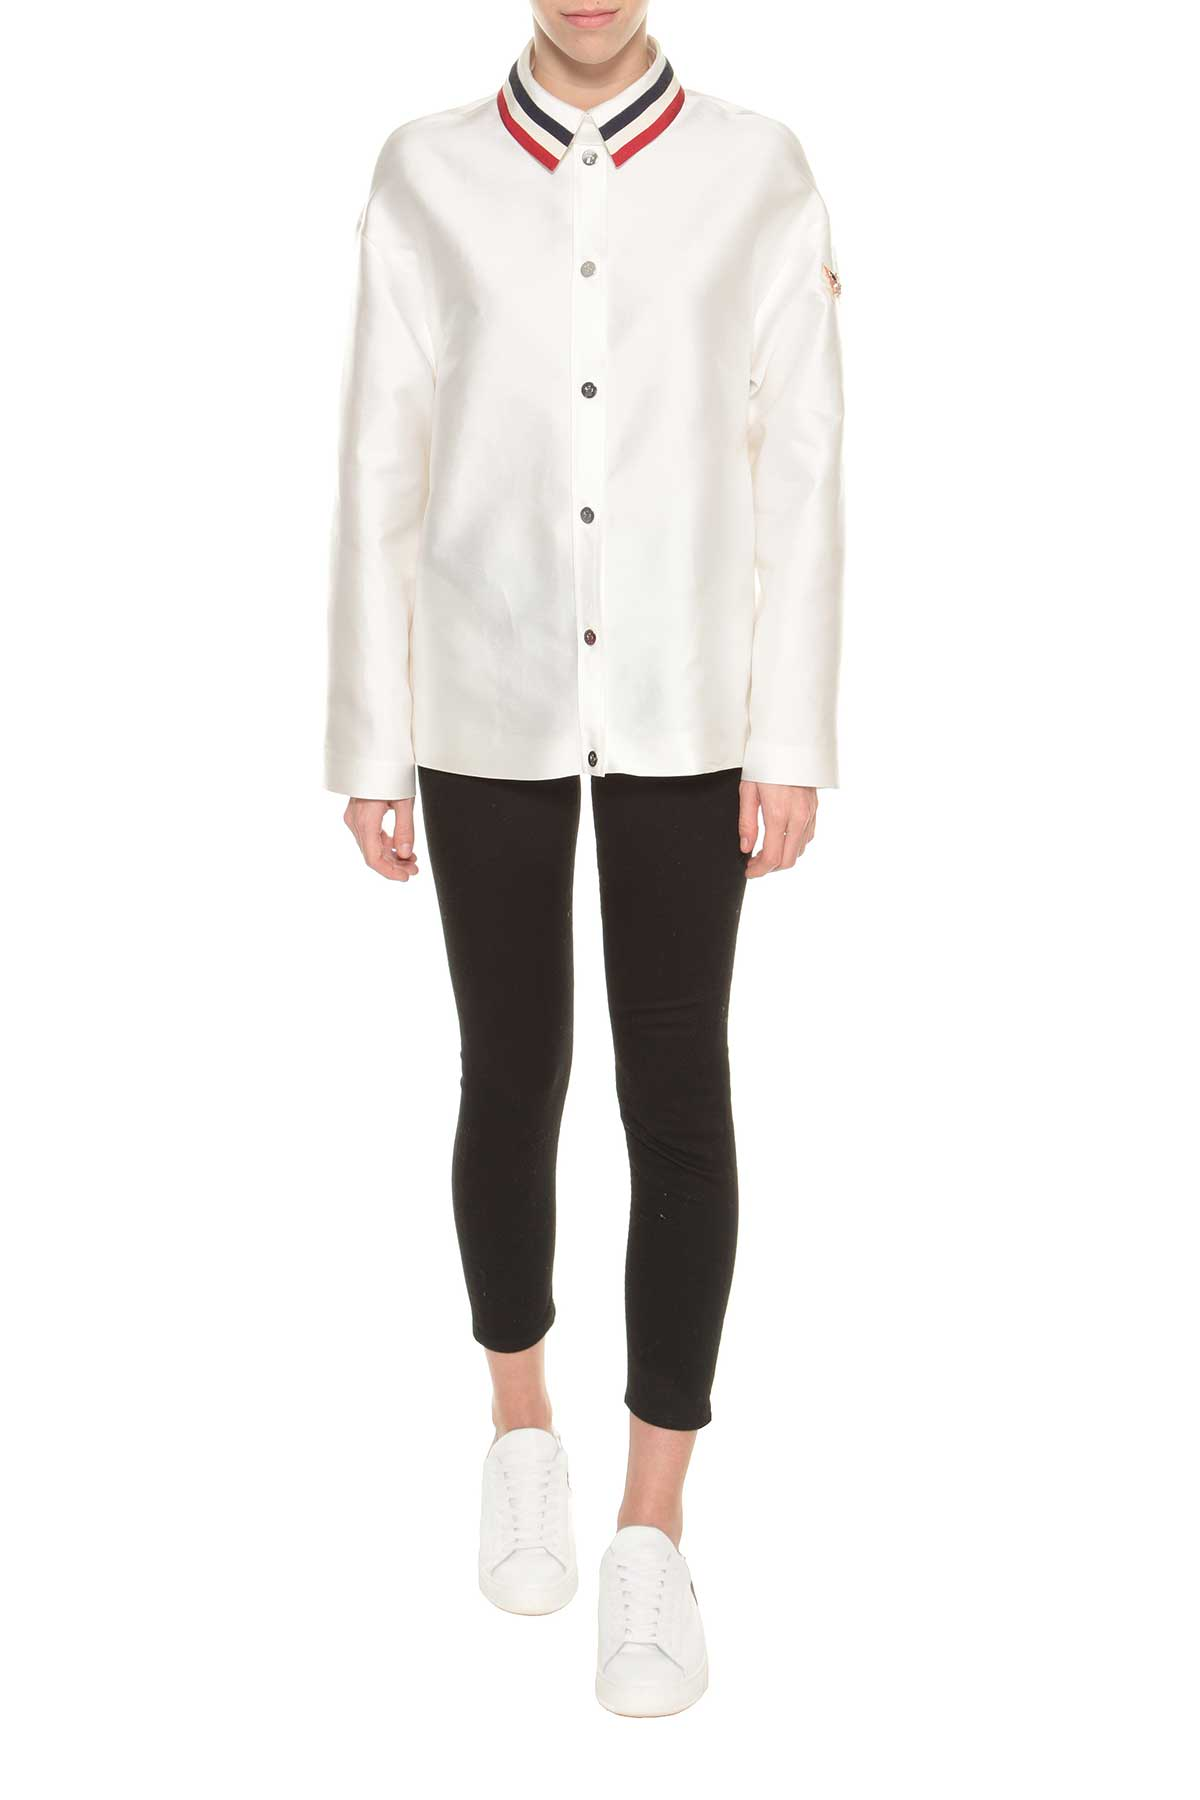 Moncler Gamme Rouge Satin Jacket Fouette